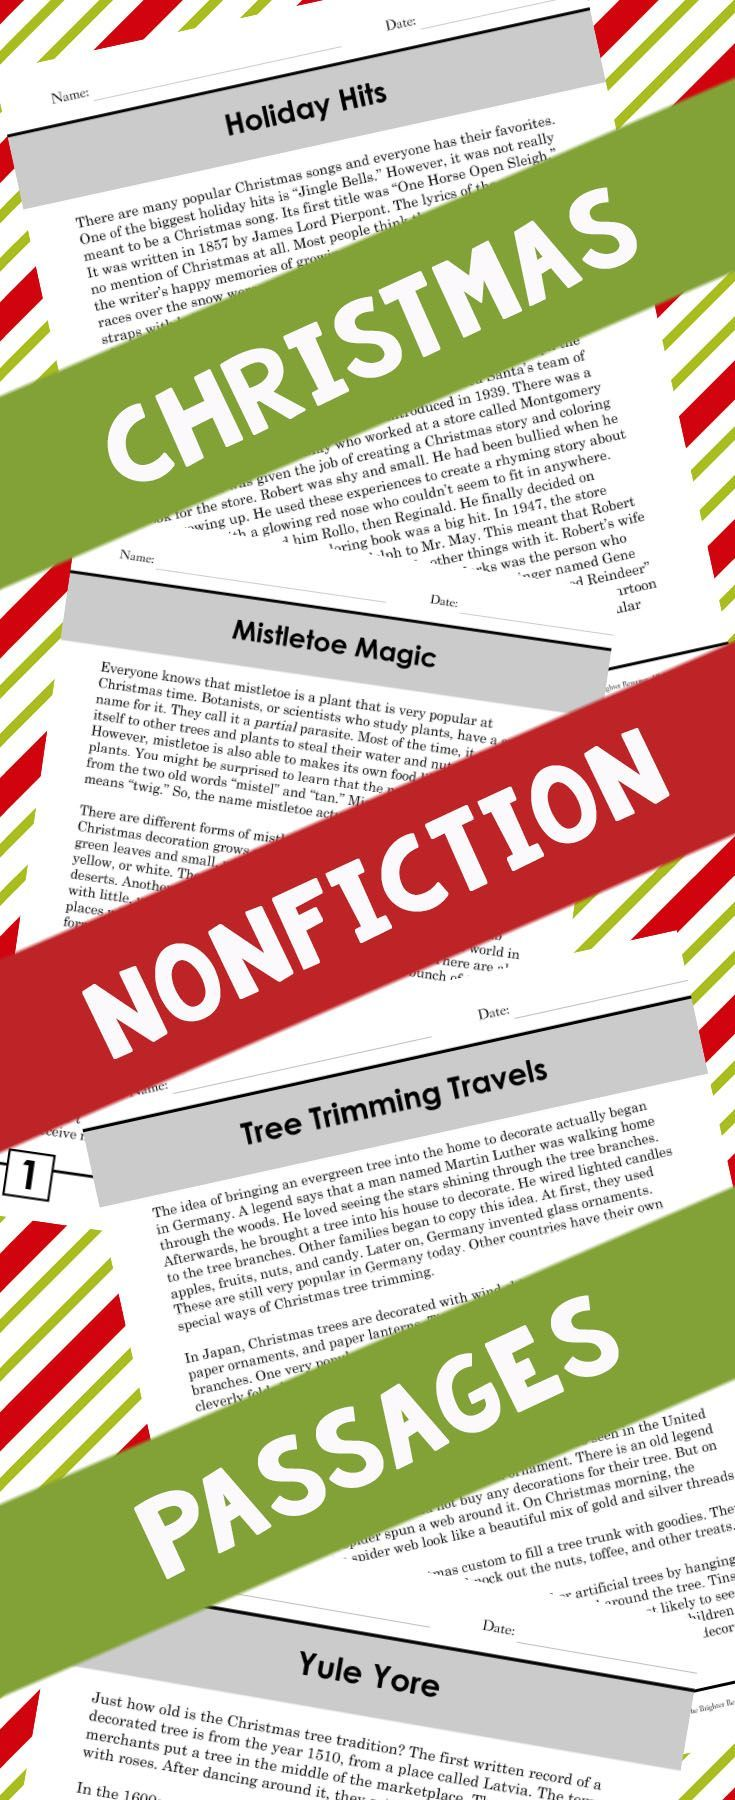 Nonfiction reading passages that feature one page of informational text and one page of multiple-choice comprehension questions with 3 answer choices! Topics include mistletoe, Christmas songs (Jingle Bells and Rudolph the Red-Nosed Reindeer), tree decorating around the world, and the history of the Christmas tree.